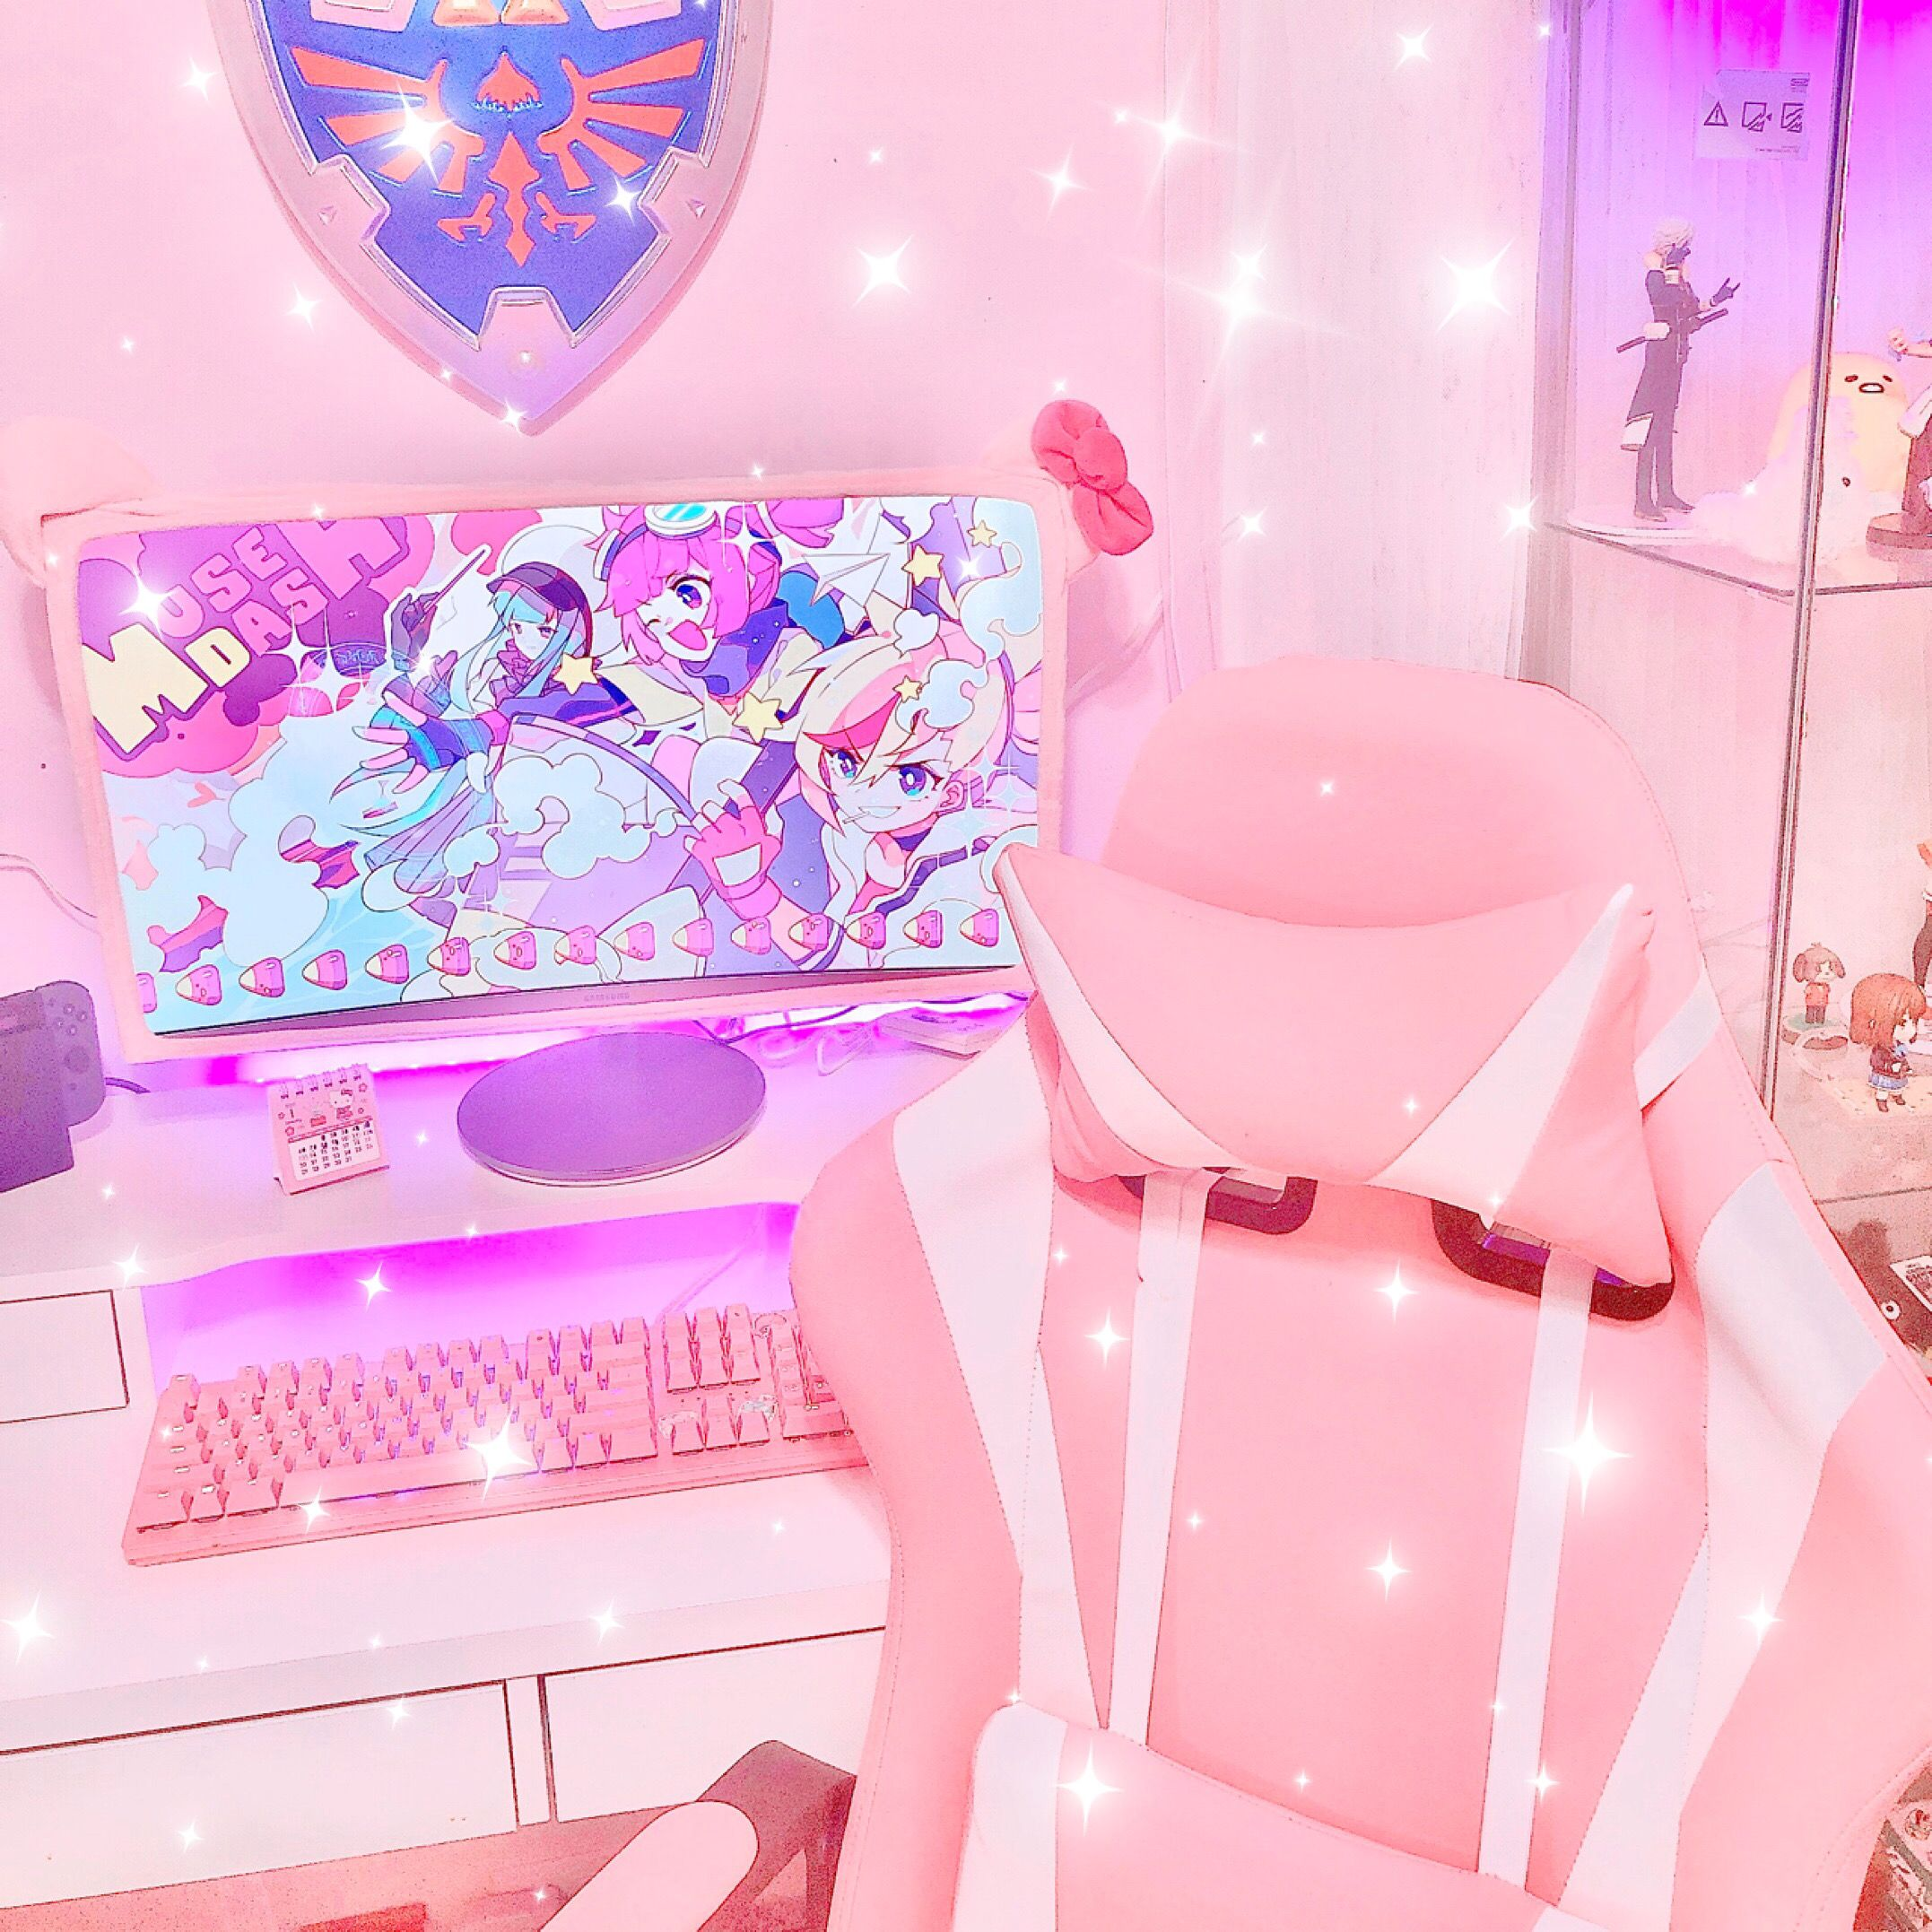 setup gaming gamingsetup gamer gamersetup girl